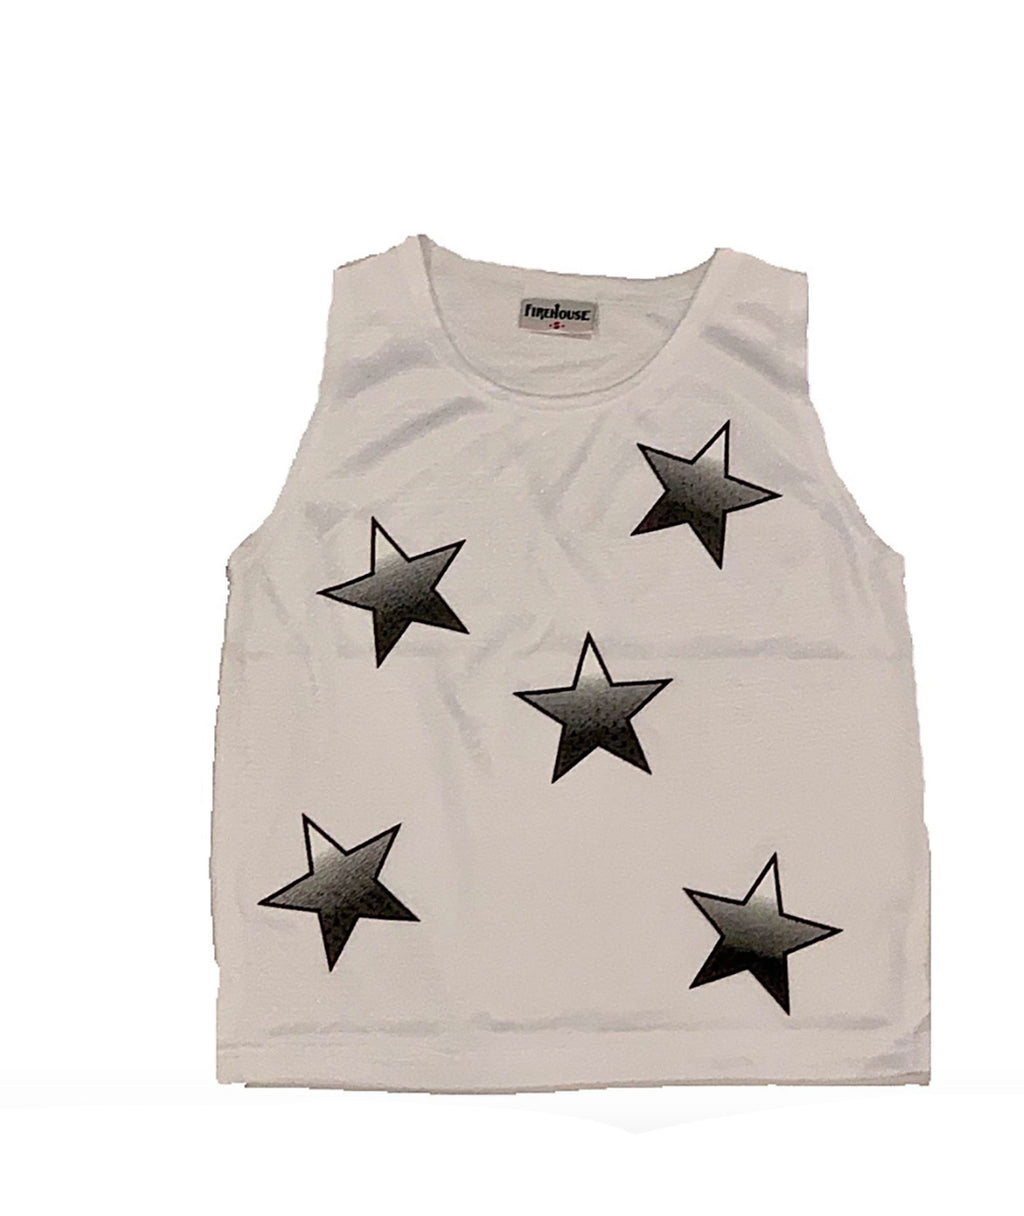 Firehouse Girls White Mesh Star Tank